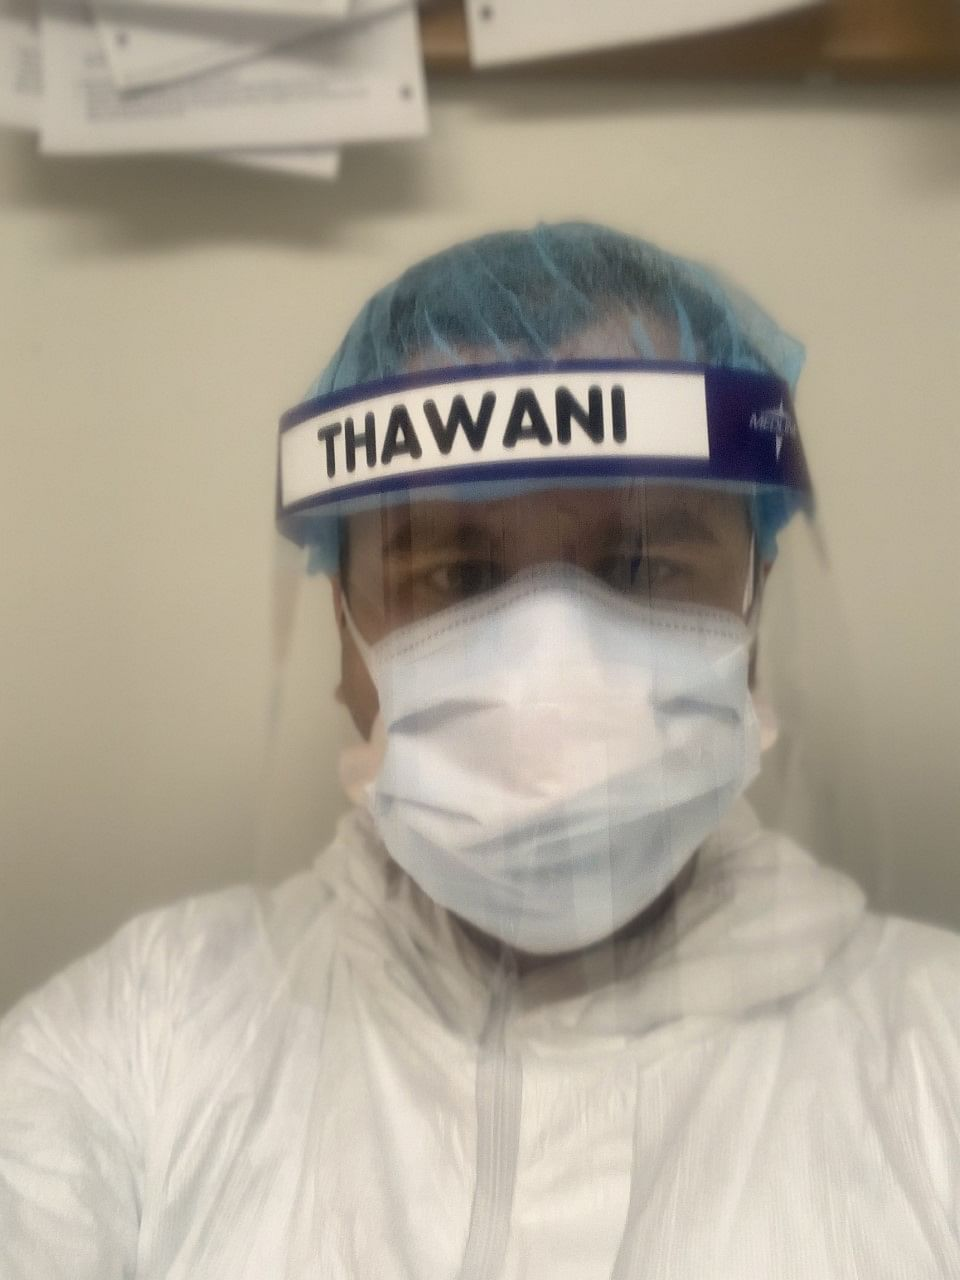 Rajat fully dressed in his PPE.